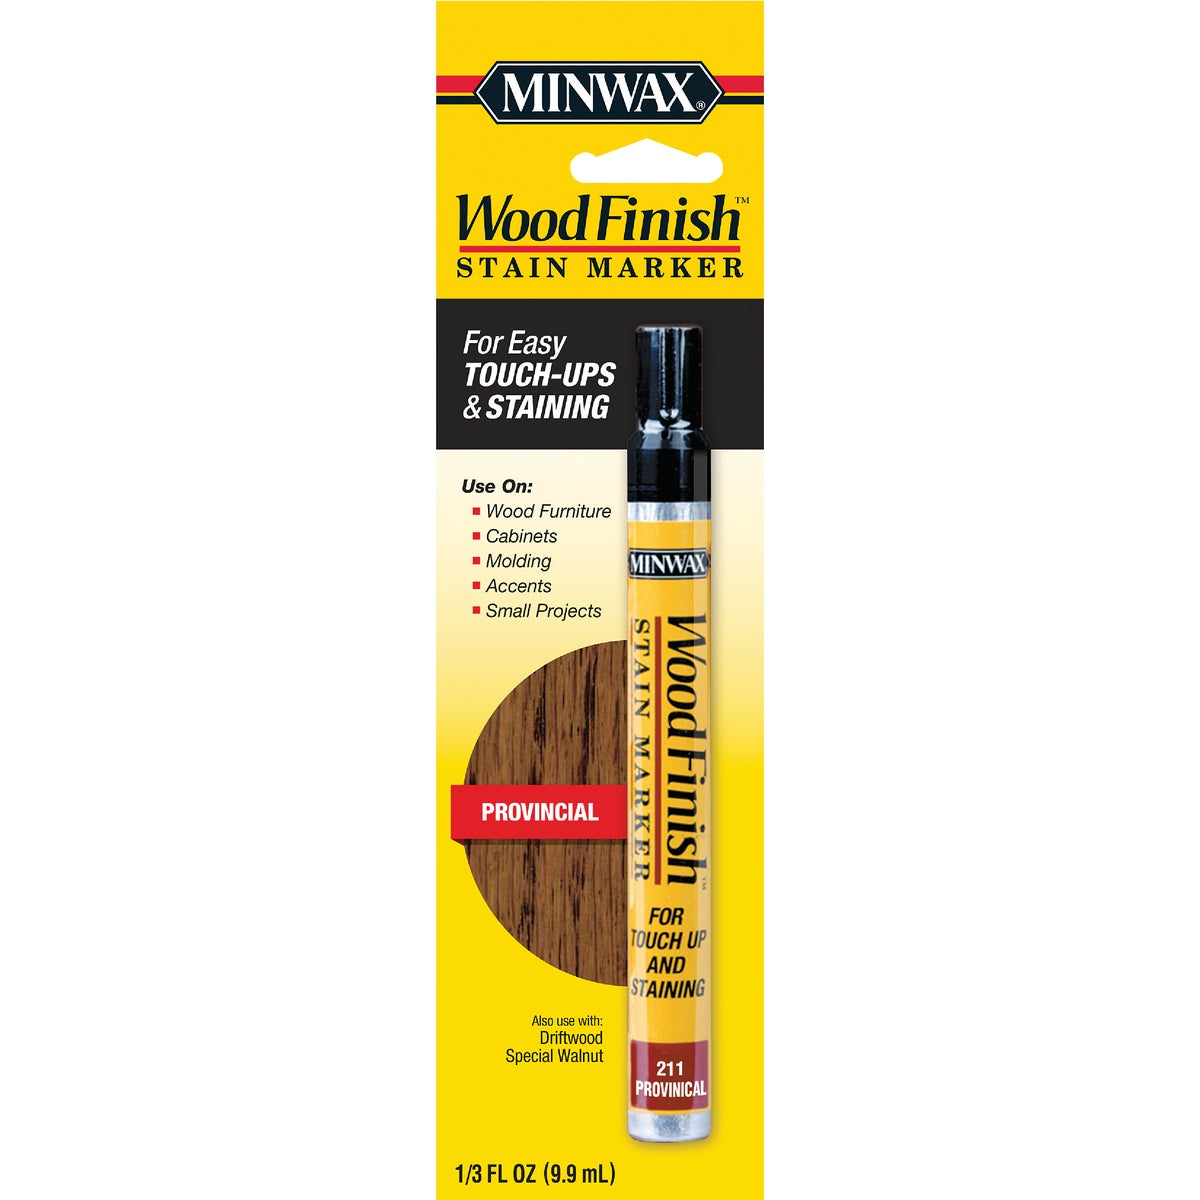 PROVINCIAL STAIN MARKER - 63482 by Minwax Company